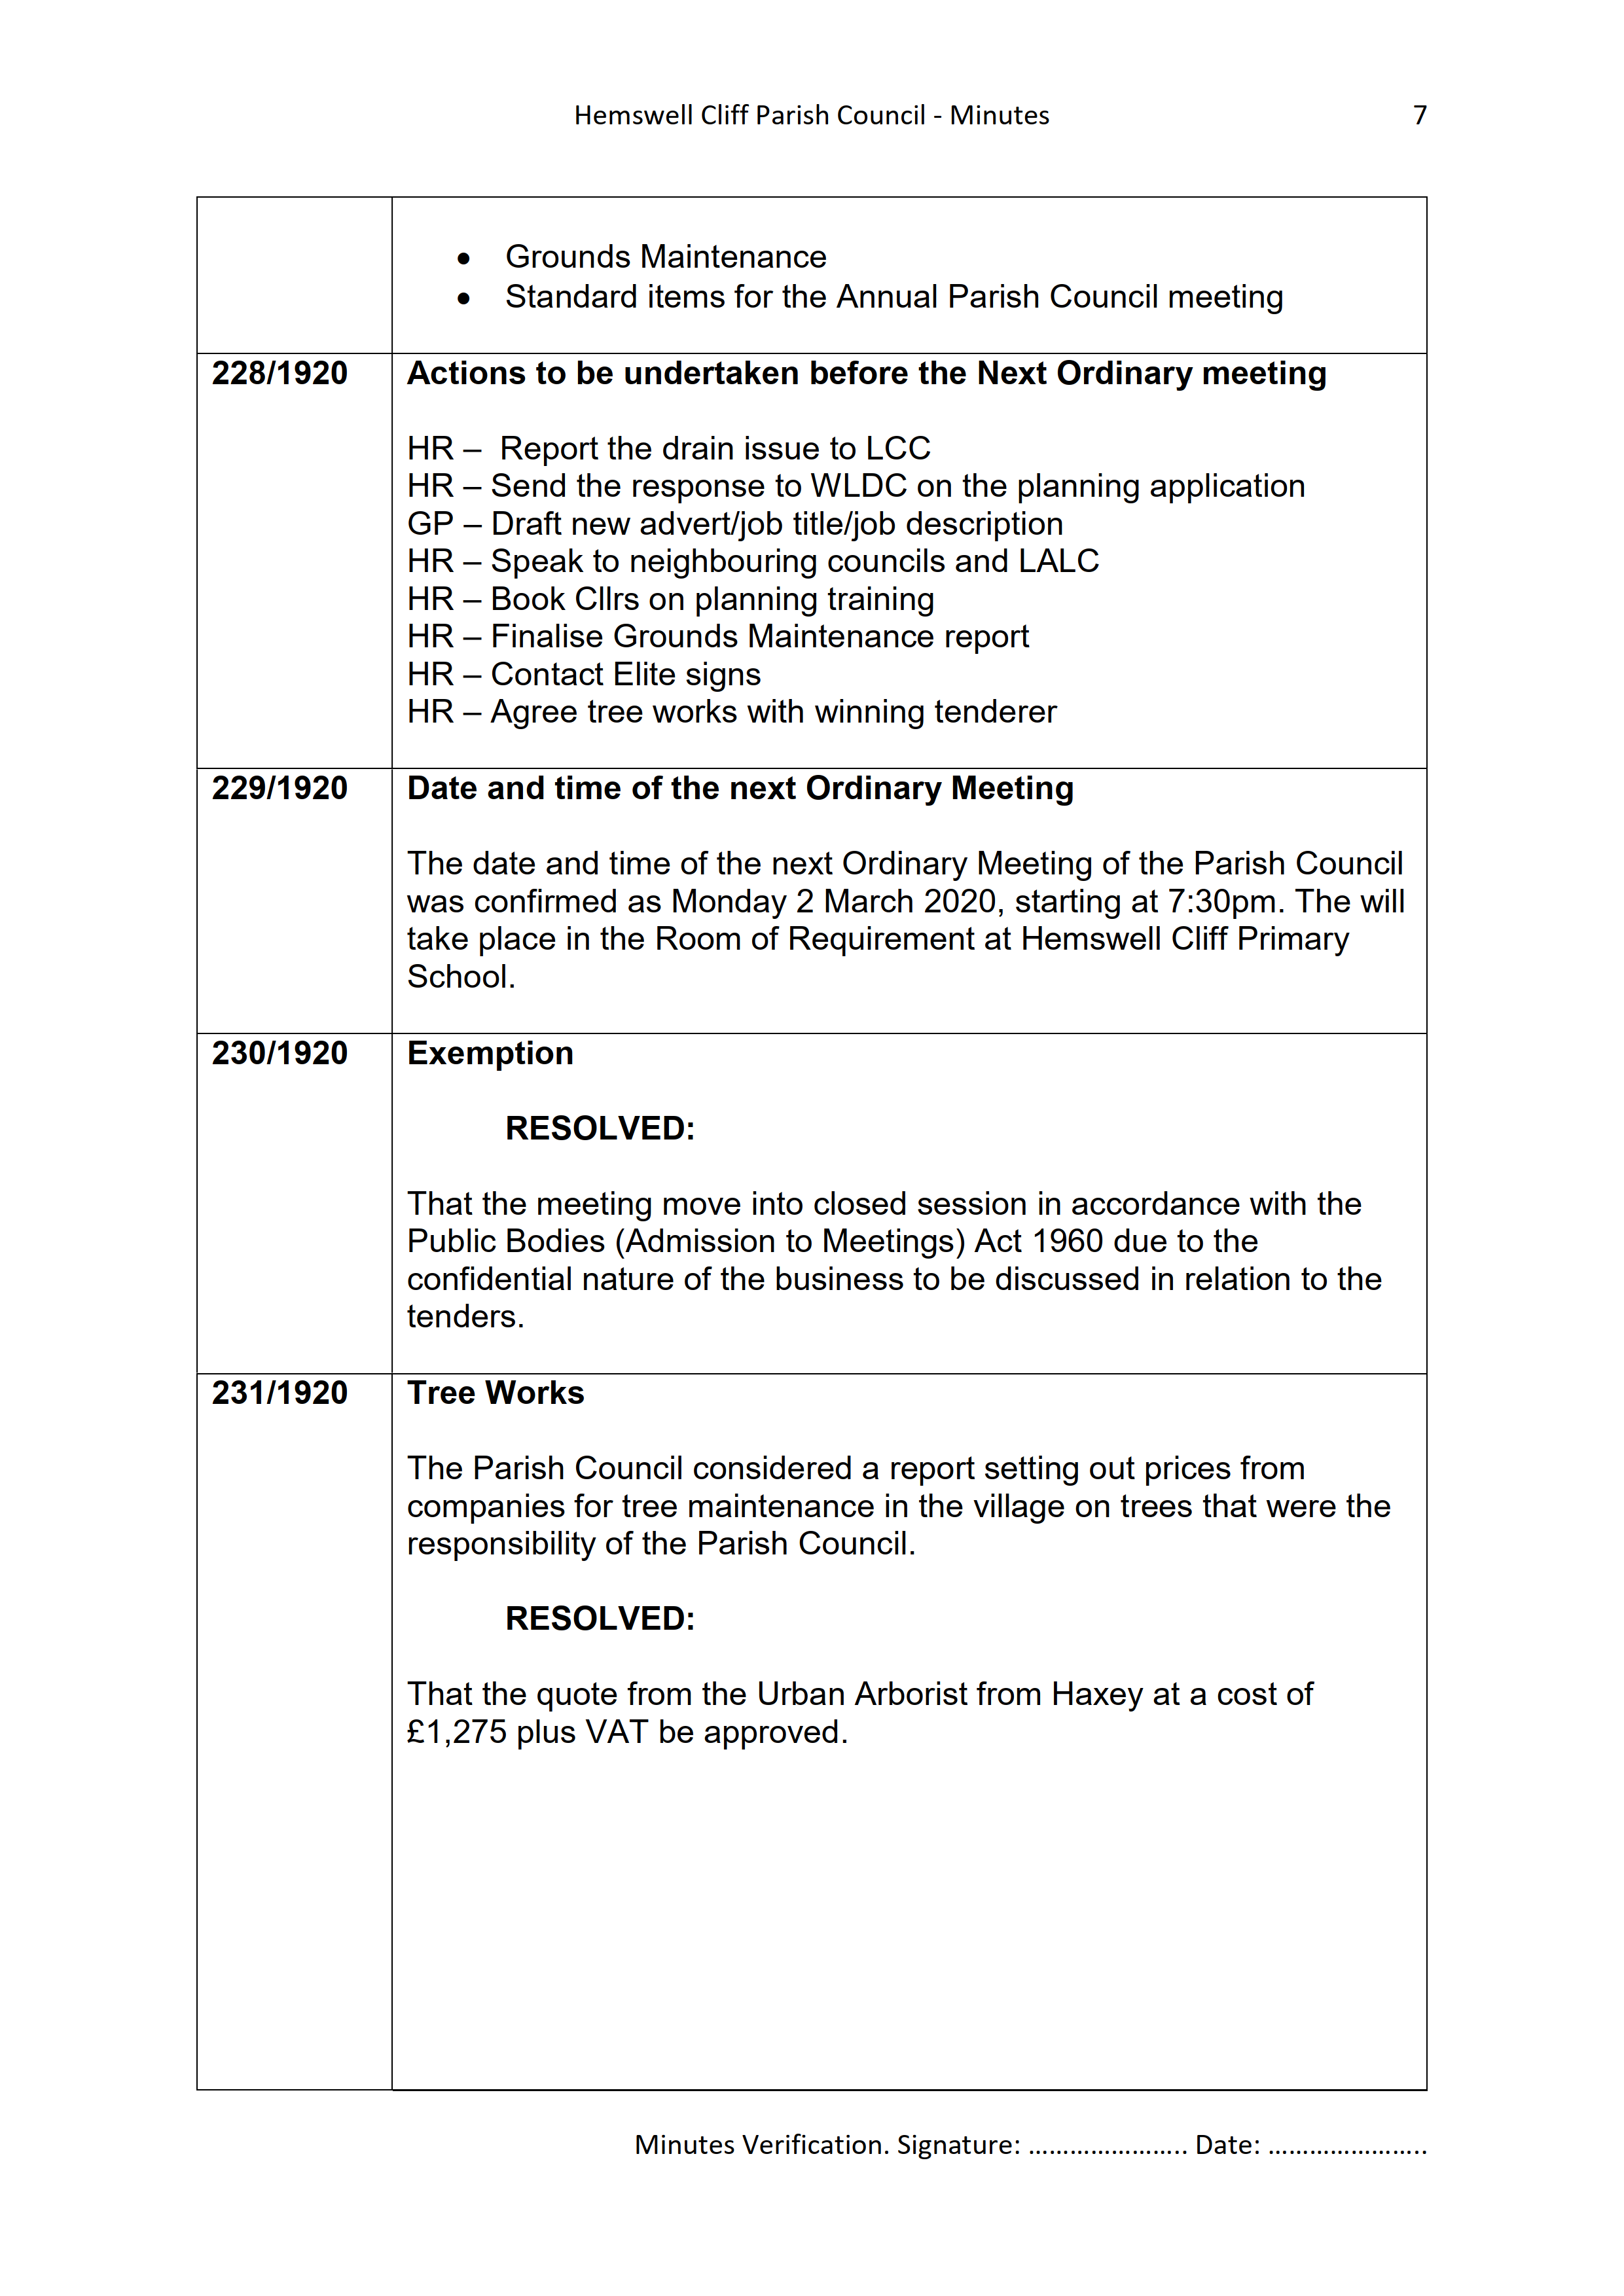 HCPC_Minutes_03-02-207.png